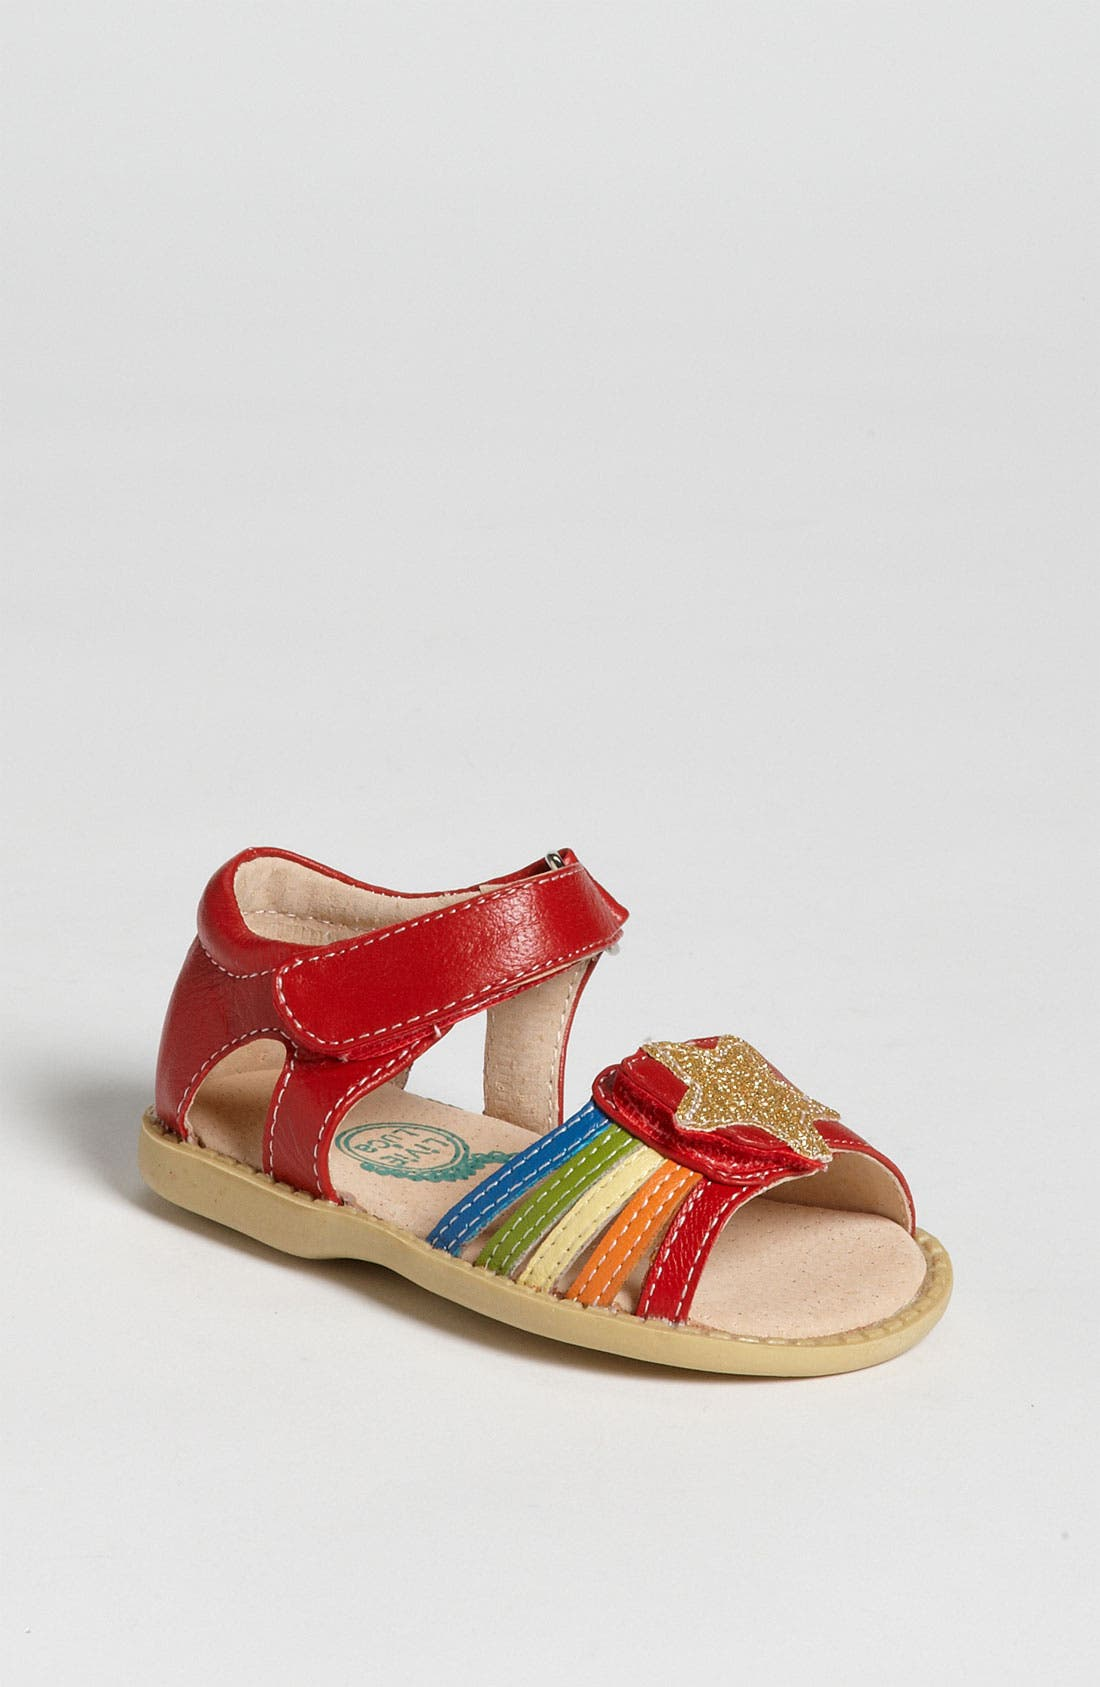 Main Image - Livie & Luca 'Nova' Sandal (Baby, Walker & Toddler)